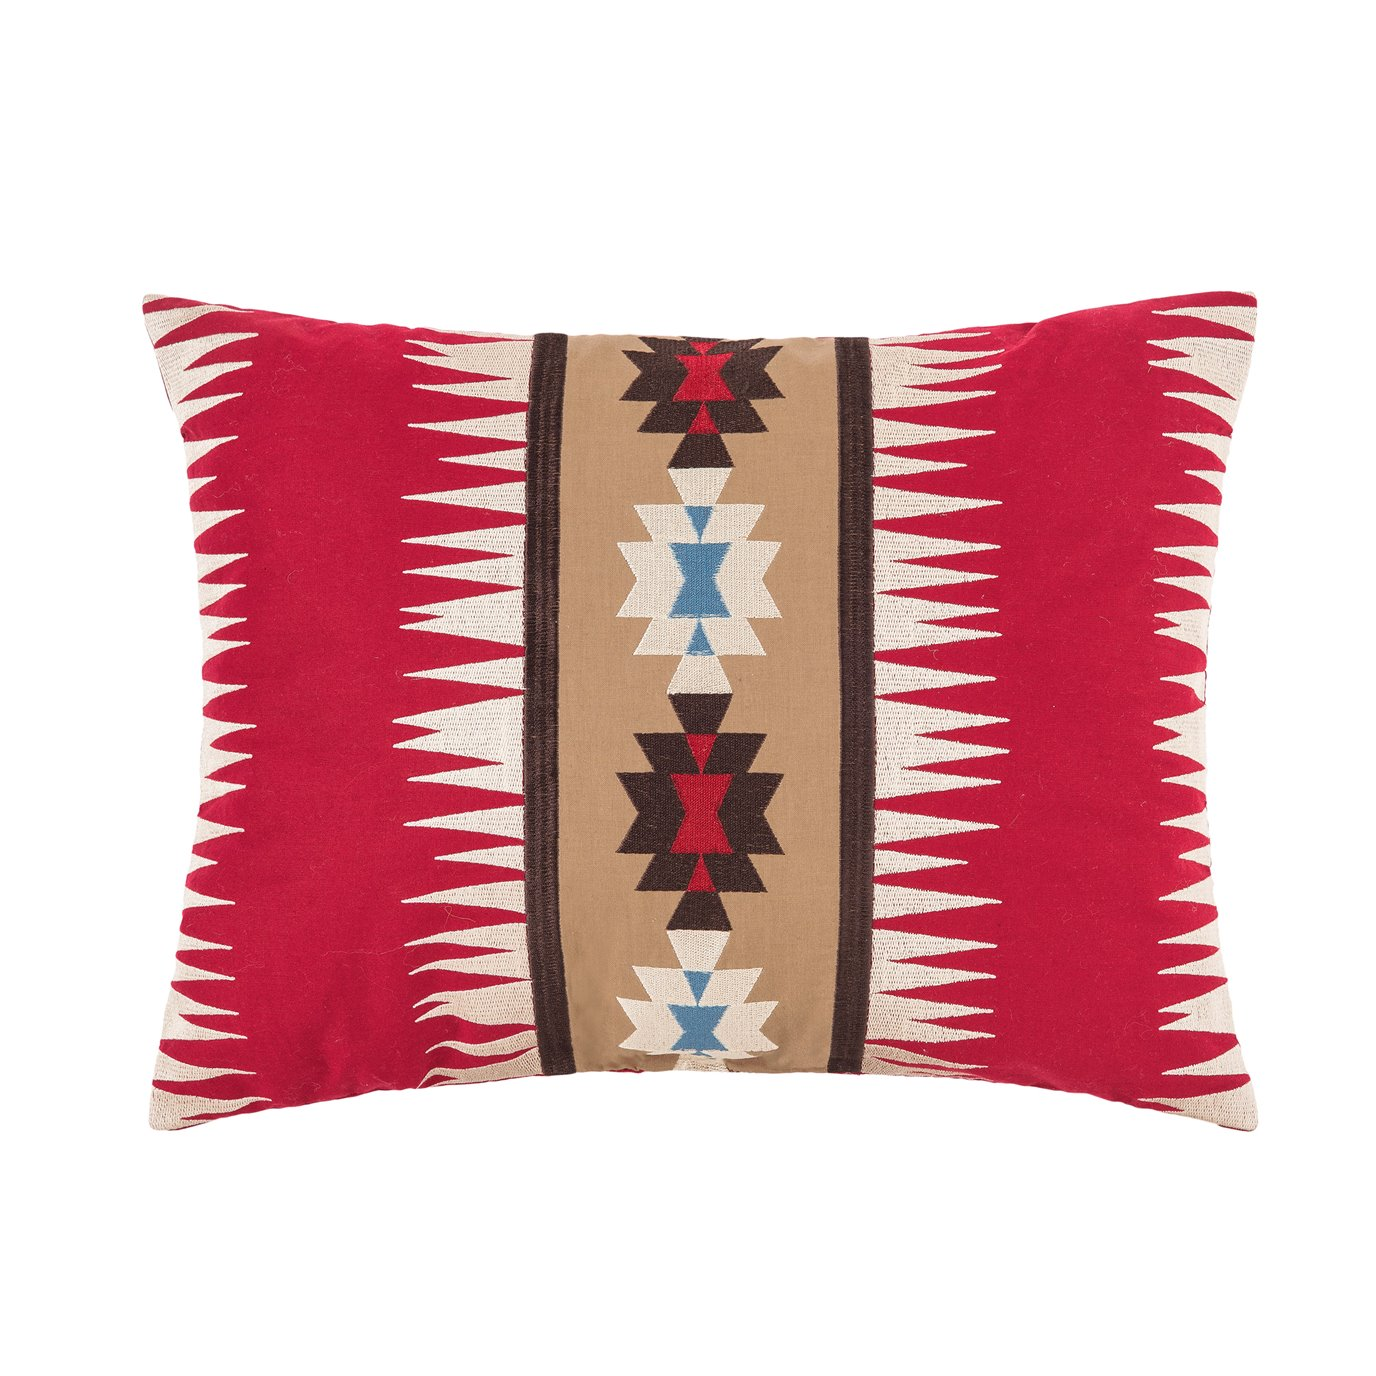 Wyatt West Embroidered Pillow